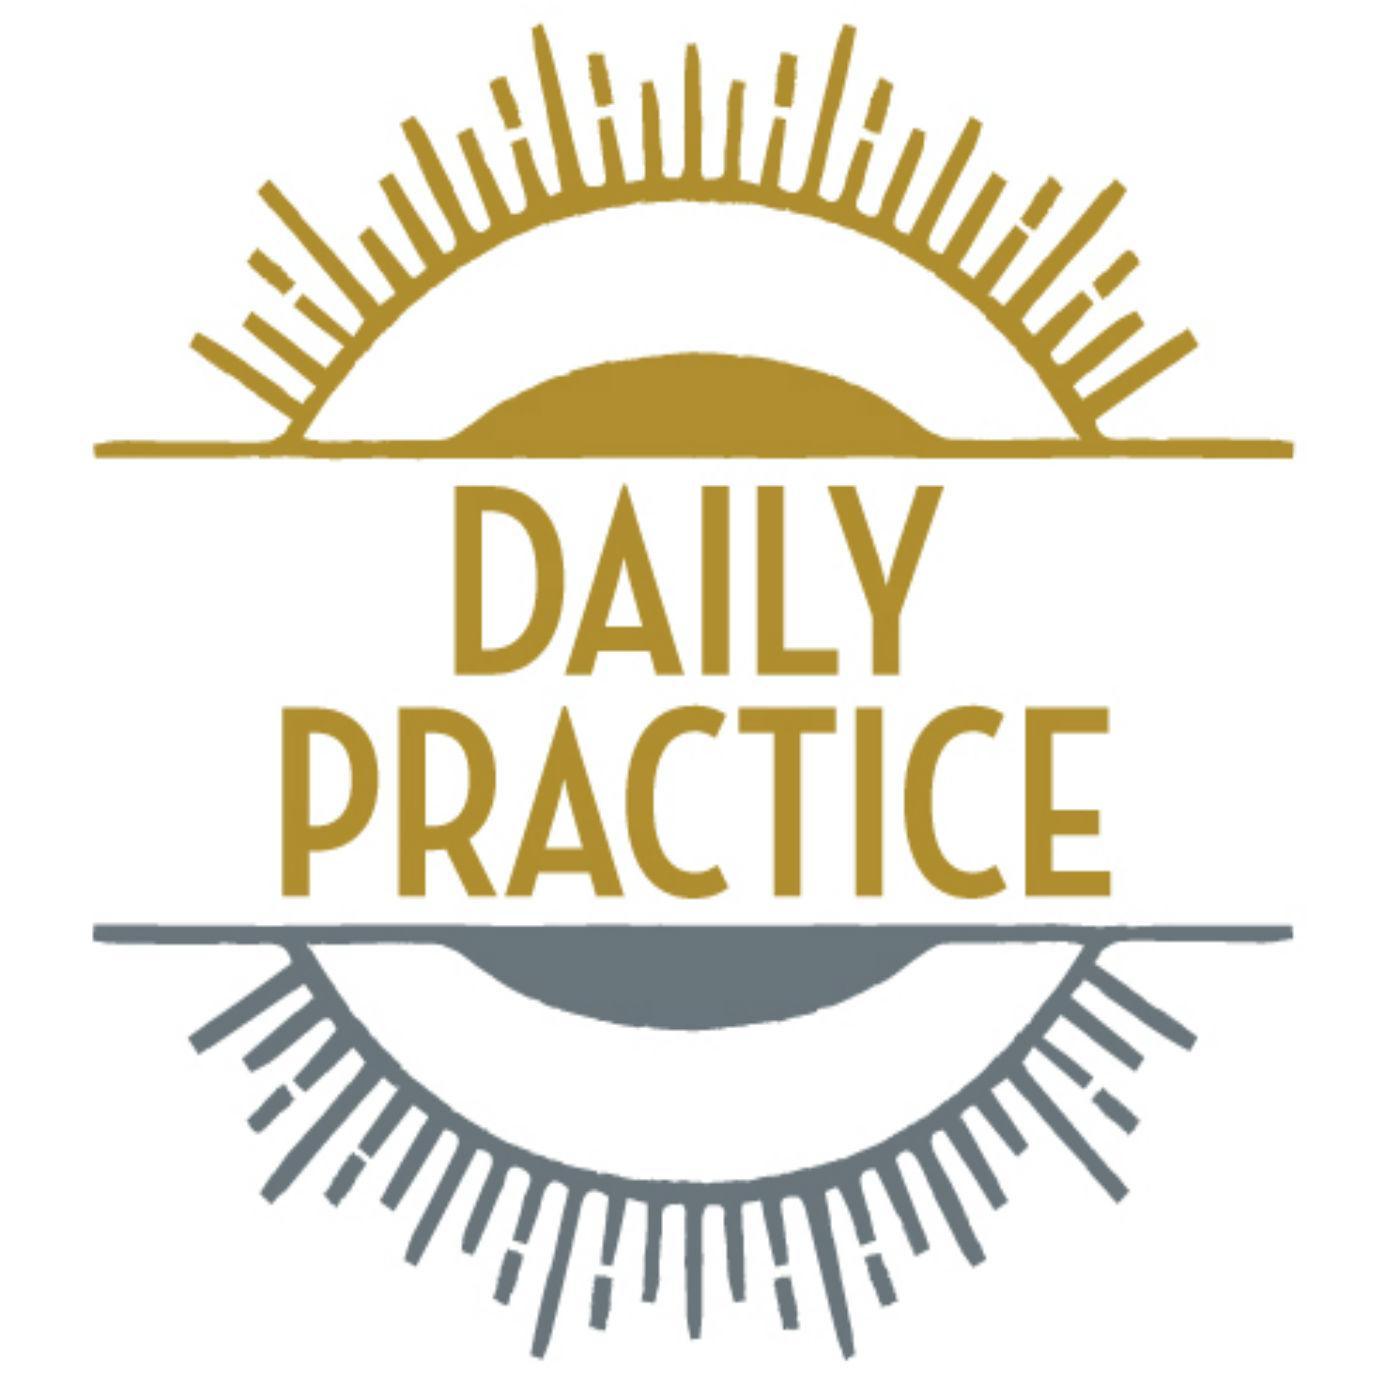 The Daily Practice show art